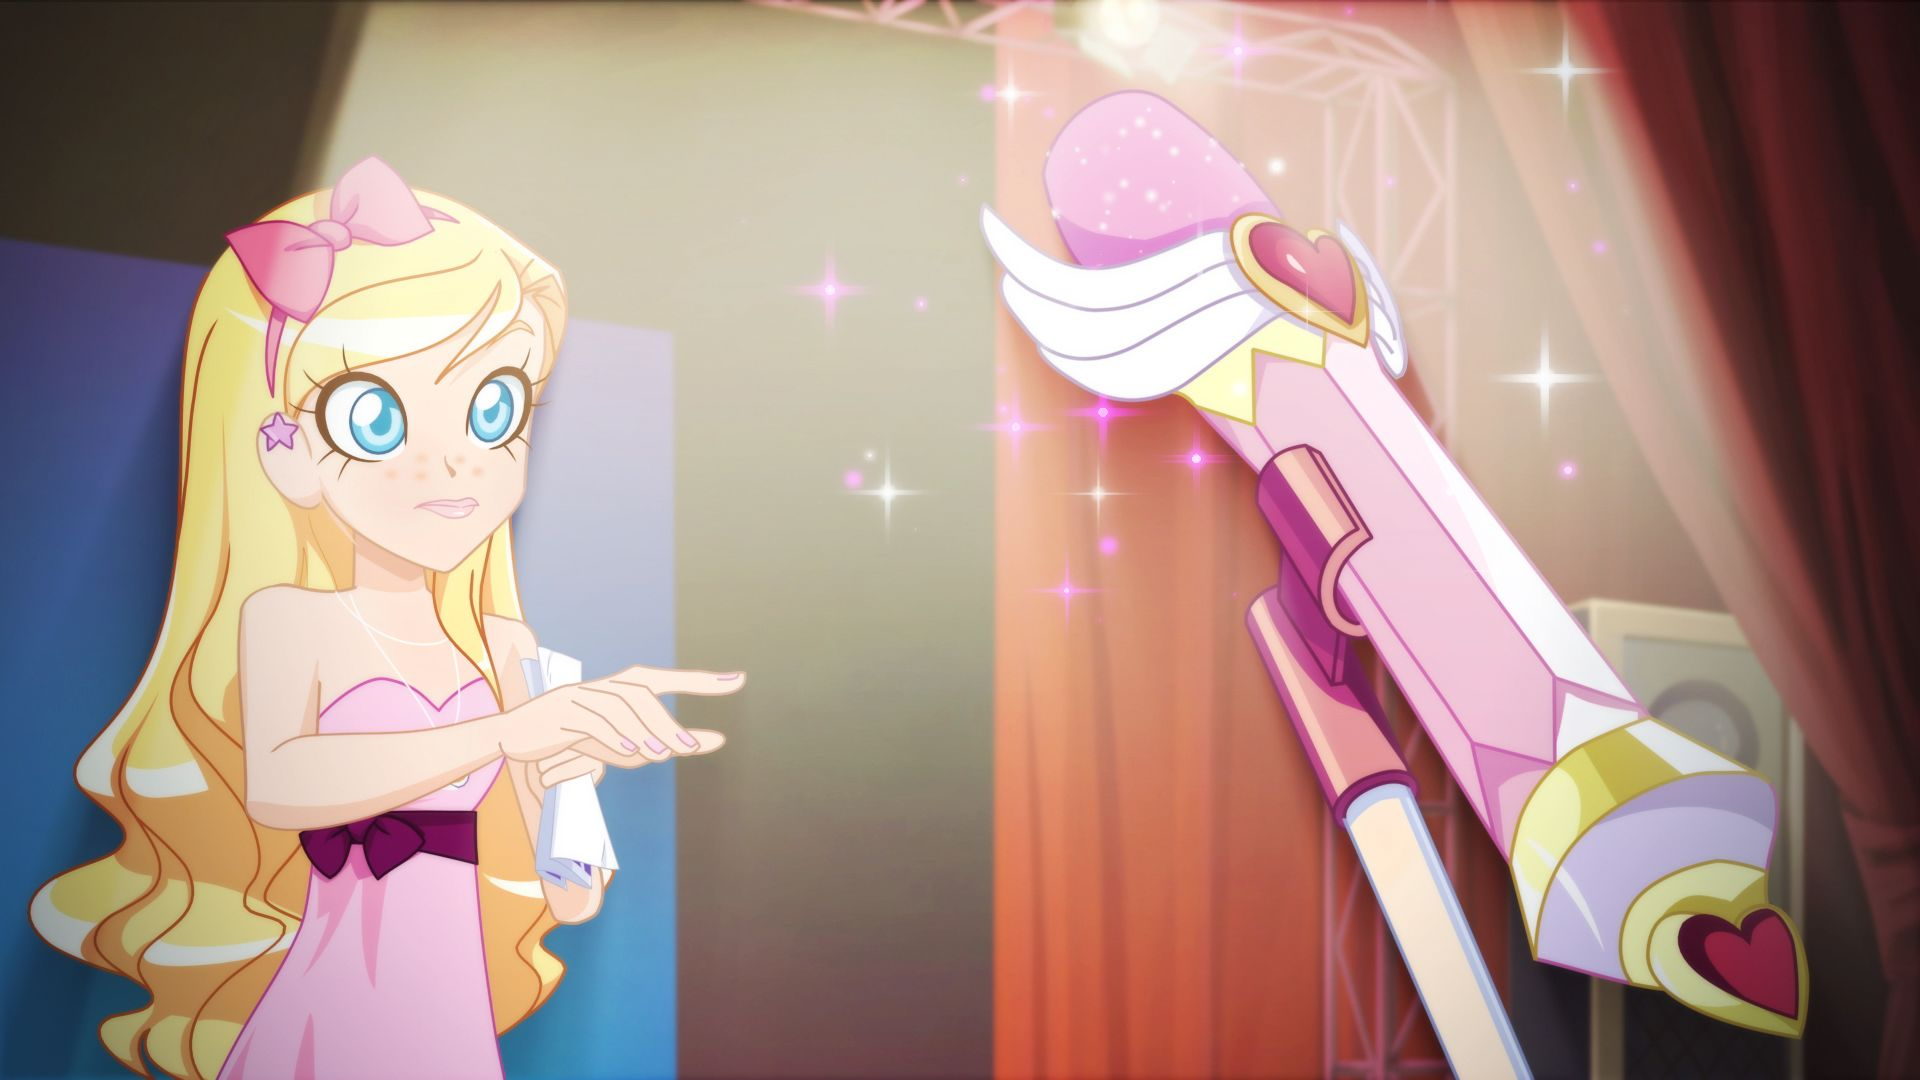 Courtney's Adventures of LoliRock- To Find a Princess